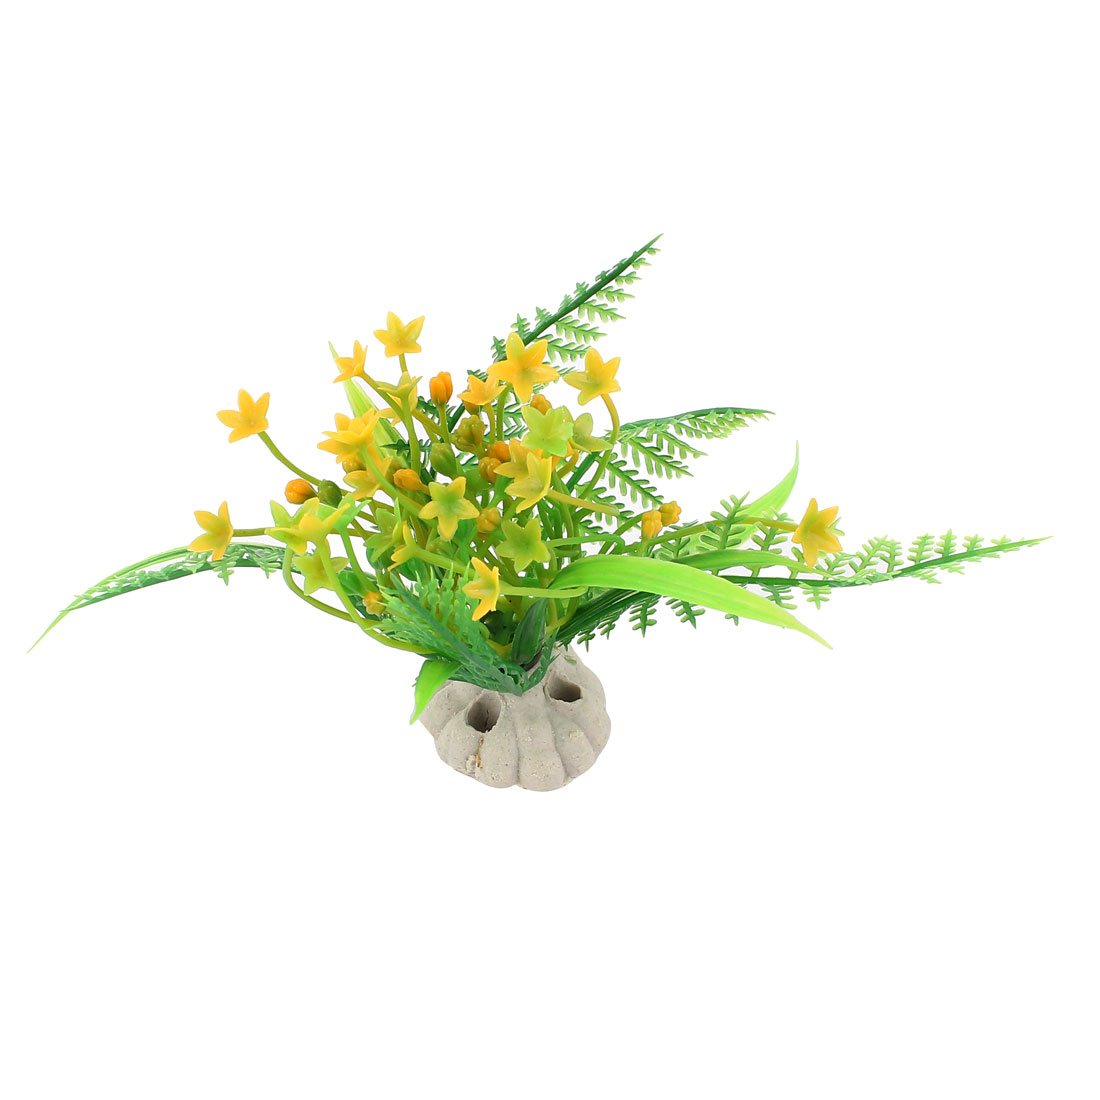 Yellow Flower Faux Aquatic Plastic Plant Aquarium Ornament Aquascaping 3.6""